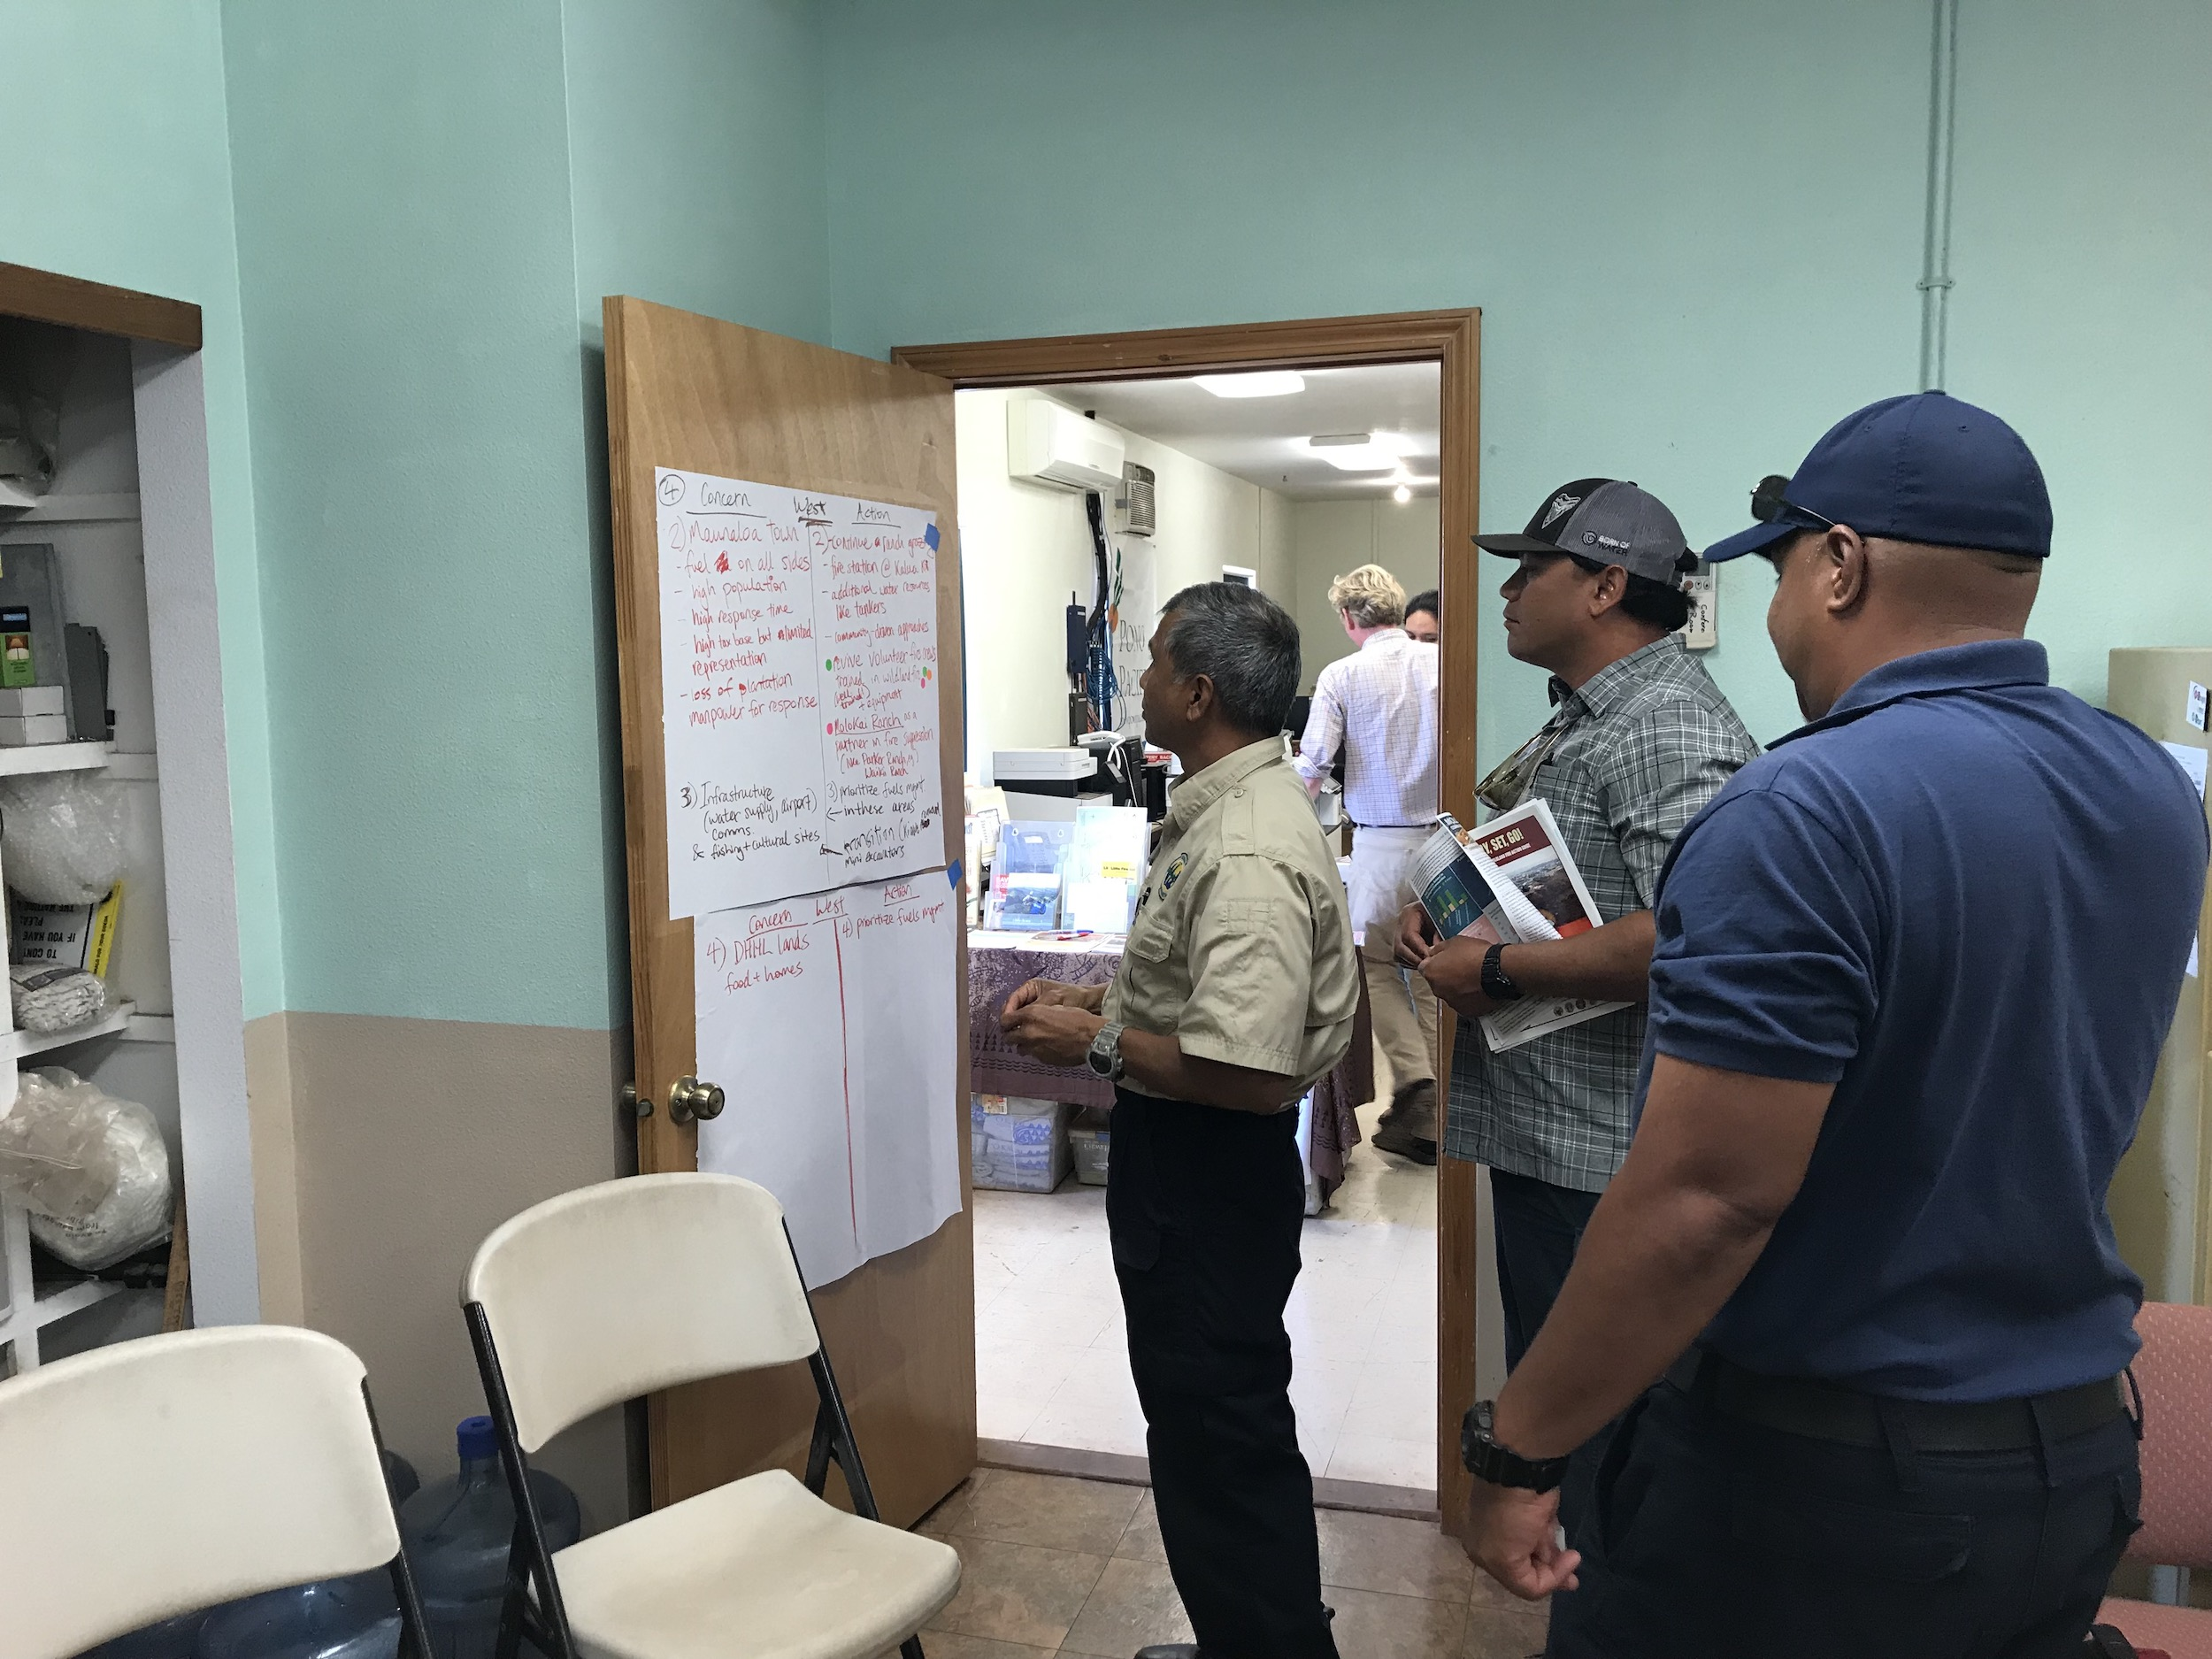 Molokai Vegetative Fuels Management Collaborative Action Planning and Mapping Workshop_4_2_2019_25.jpg